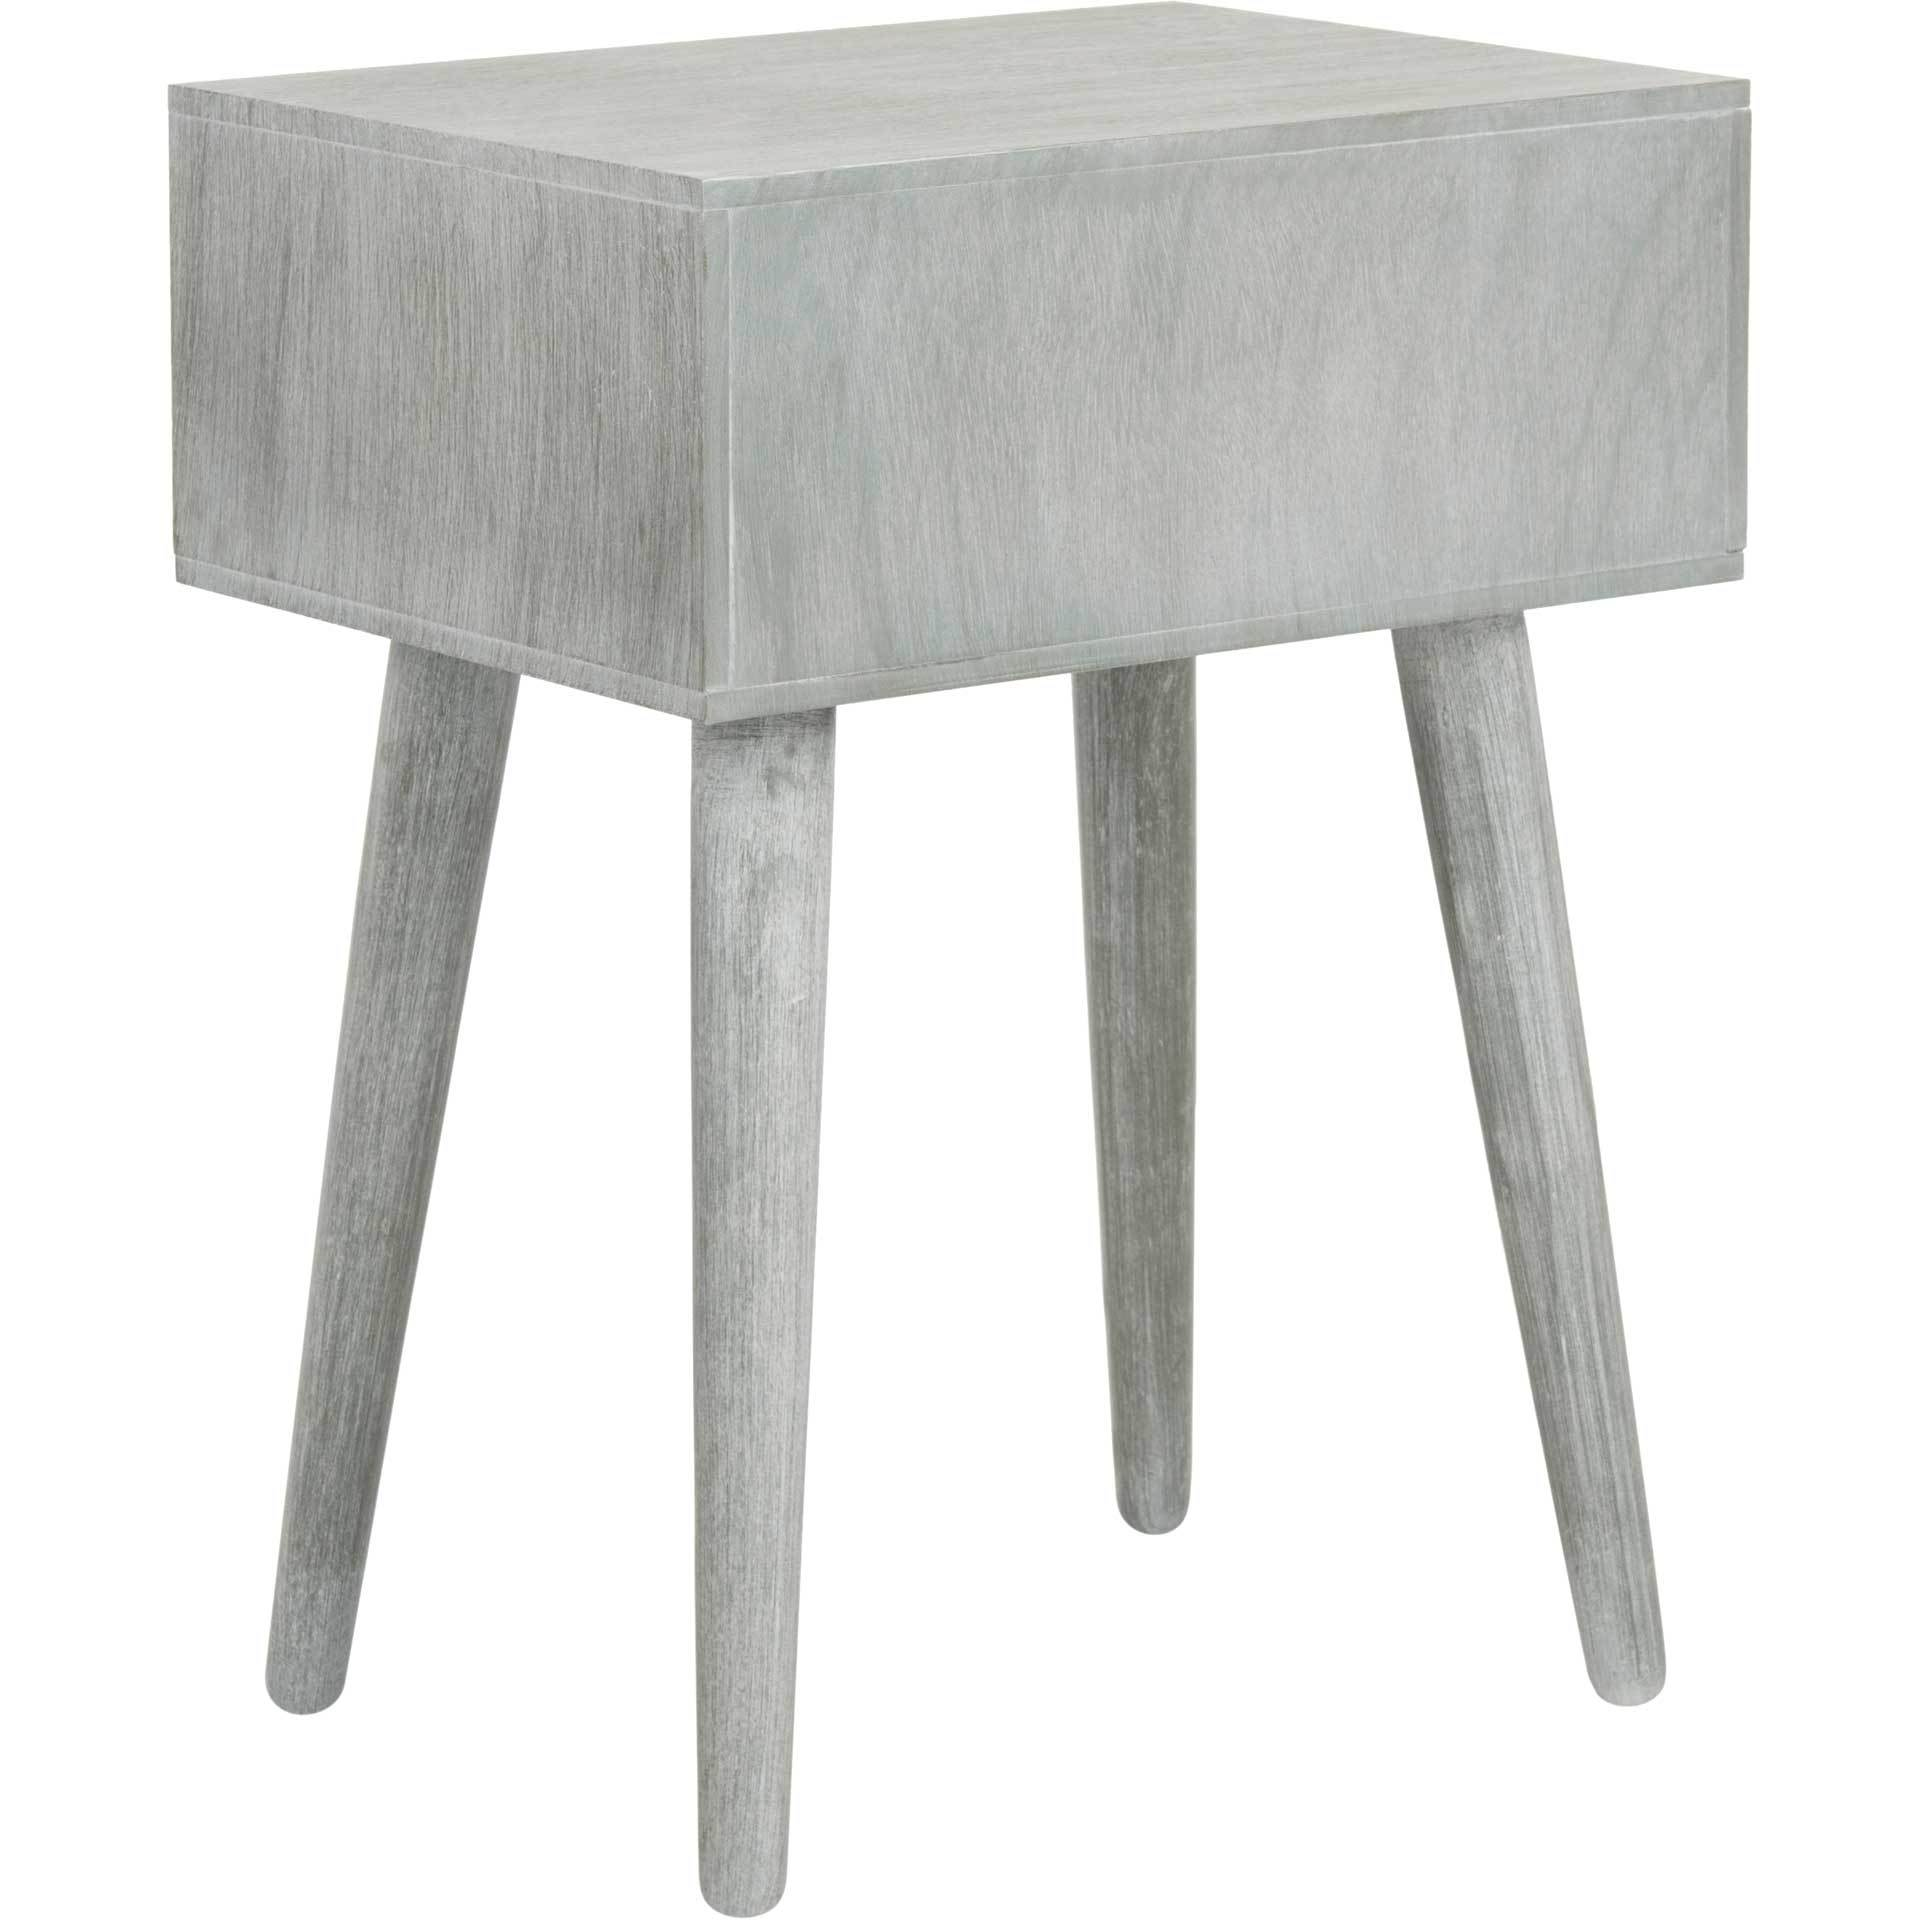 lyle accent table slate gray froy backside wedding reception decorations small target outdoor nesting tables pipe desk large pier one imports end ave six piece fabric chair and